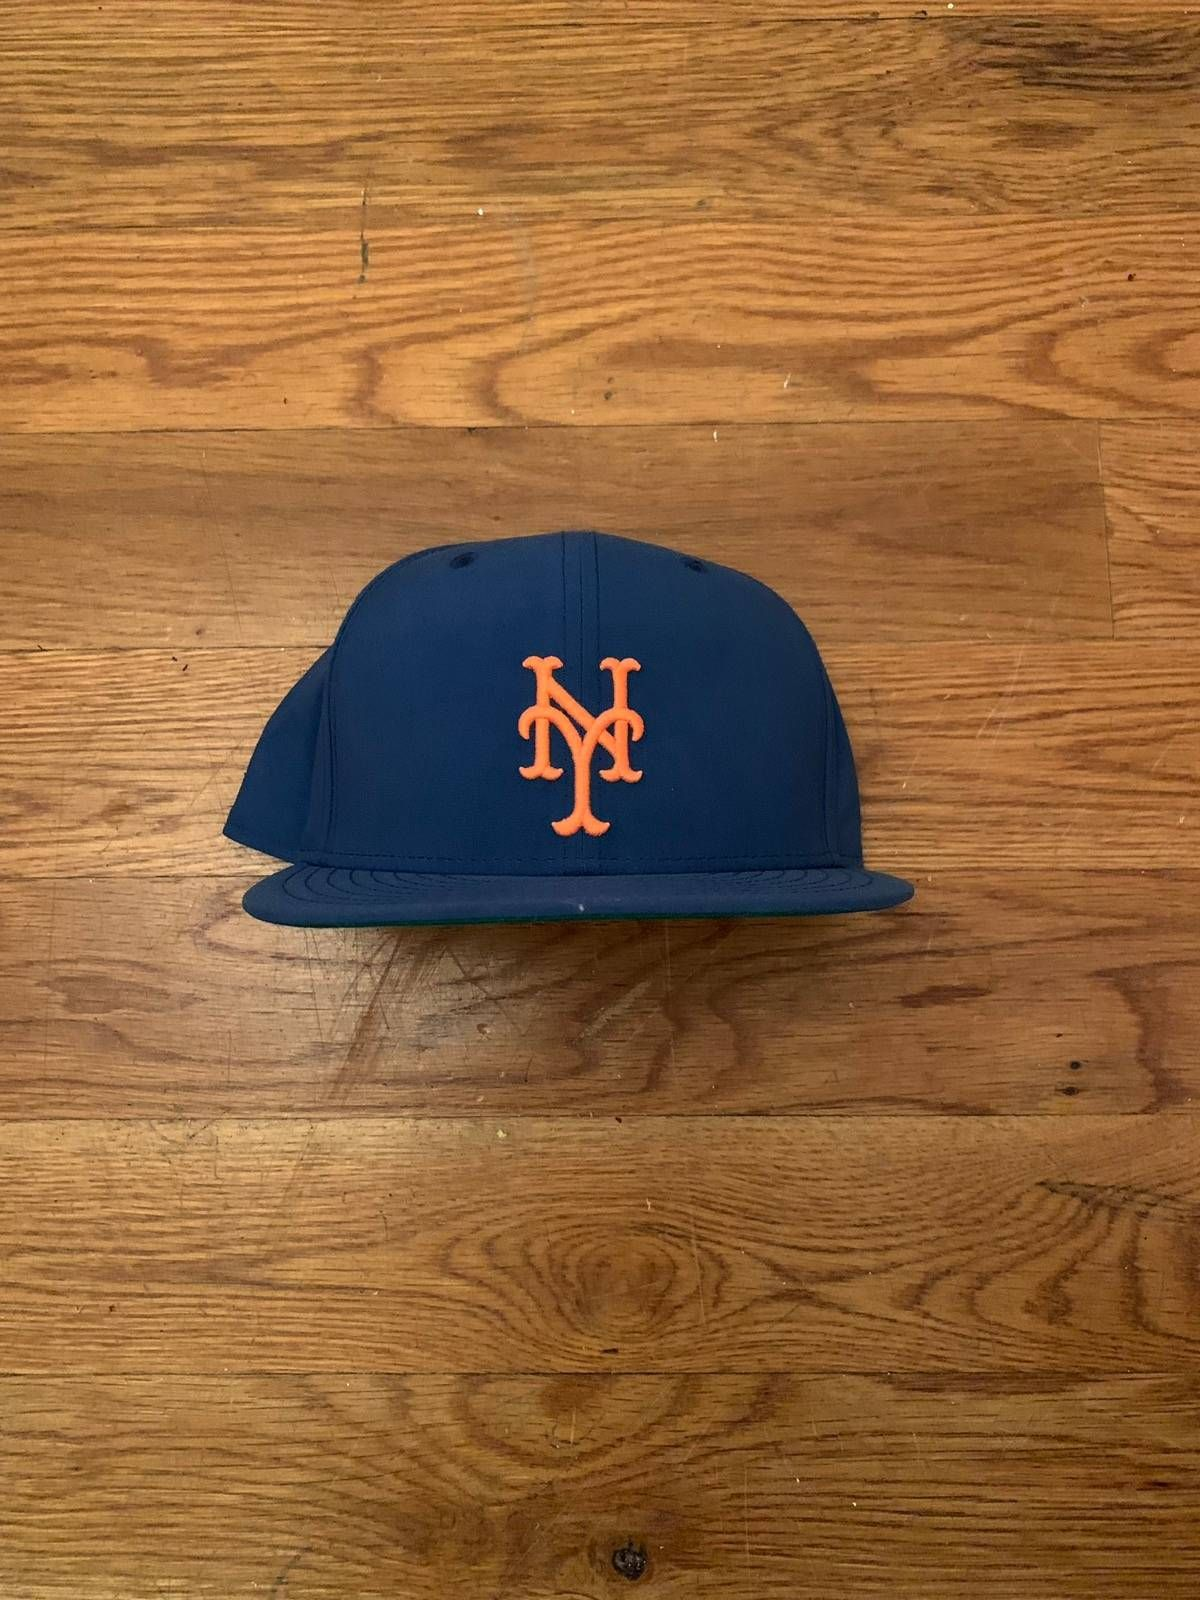 New Era Aime Leon Dore New York Mets Fitted Grailed New York Mets Aime Leon Dore New Era